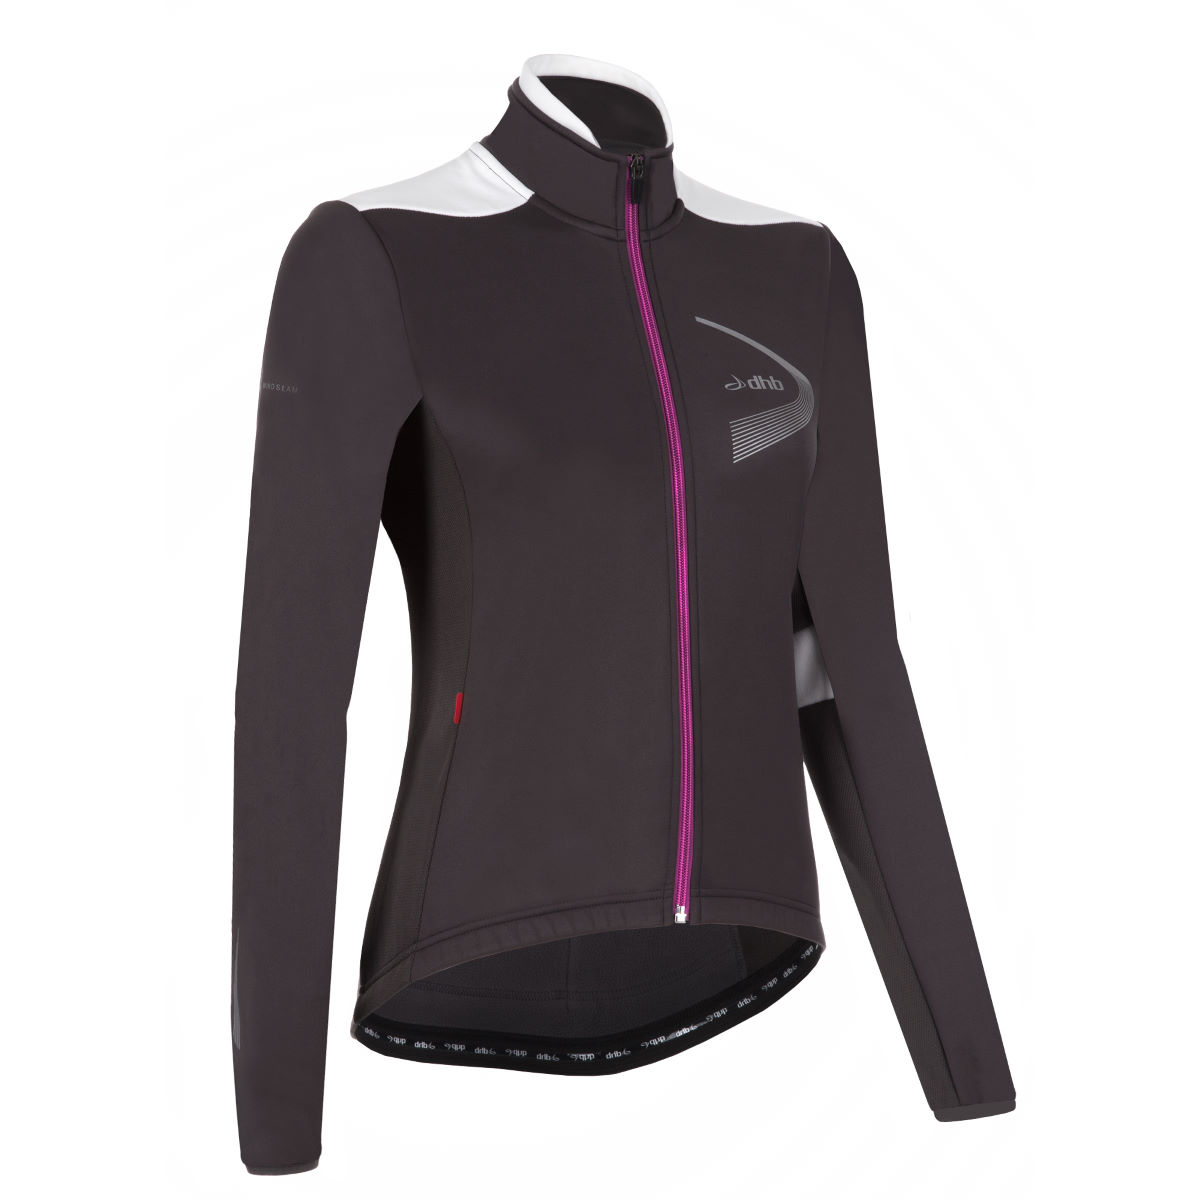 dhb Women's Windslam Roubaix Long Sleeve Jersey